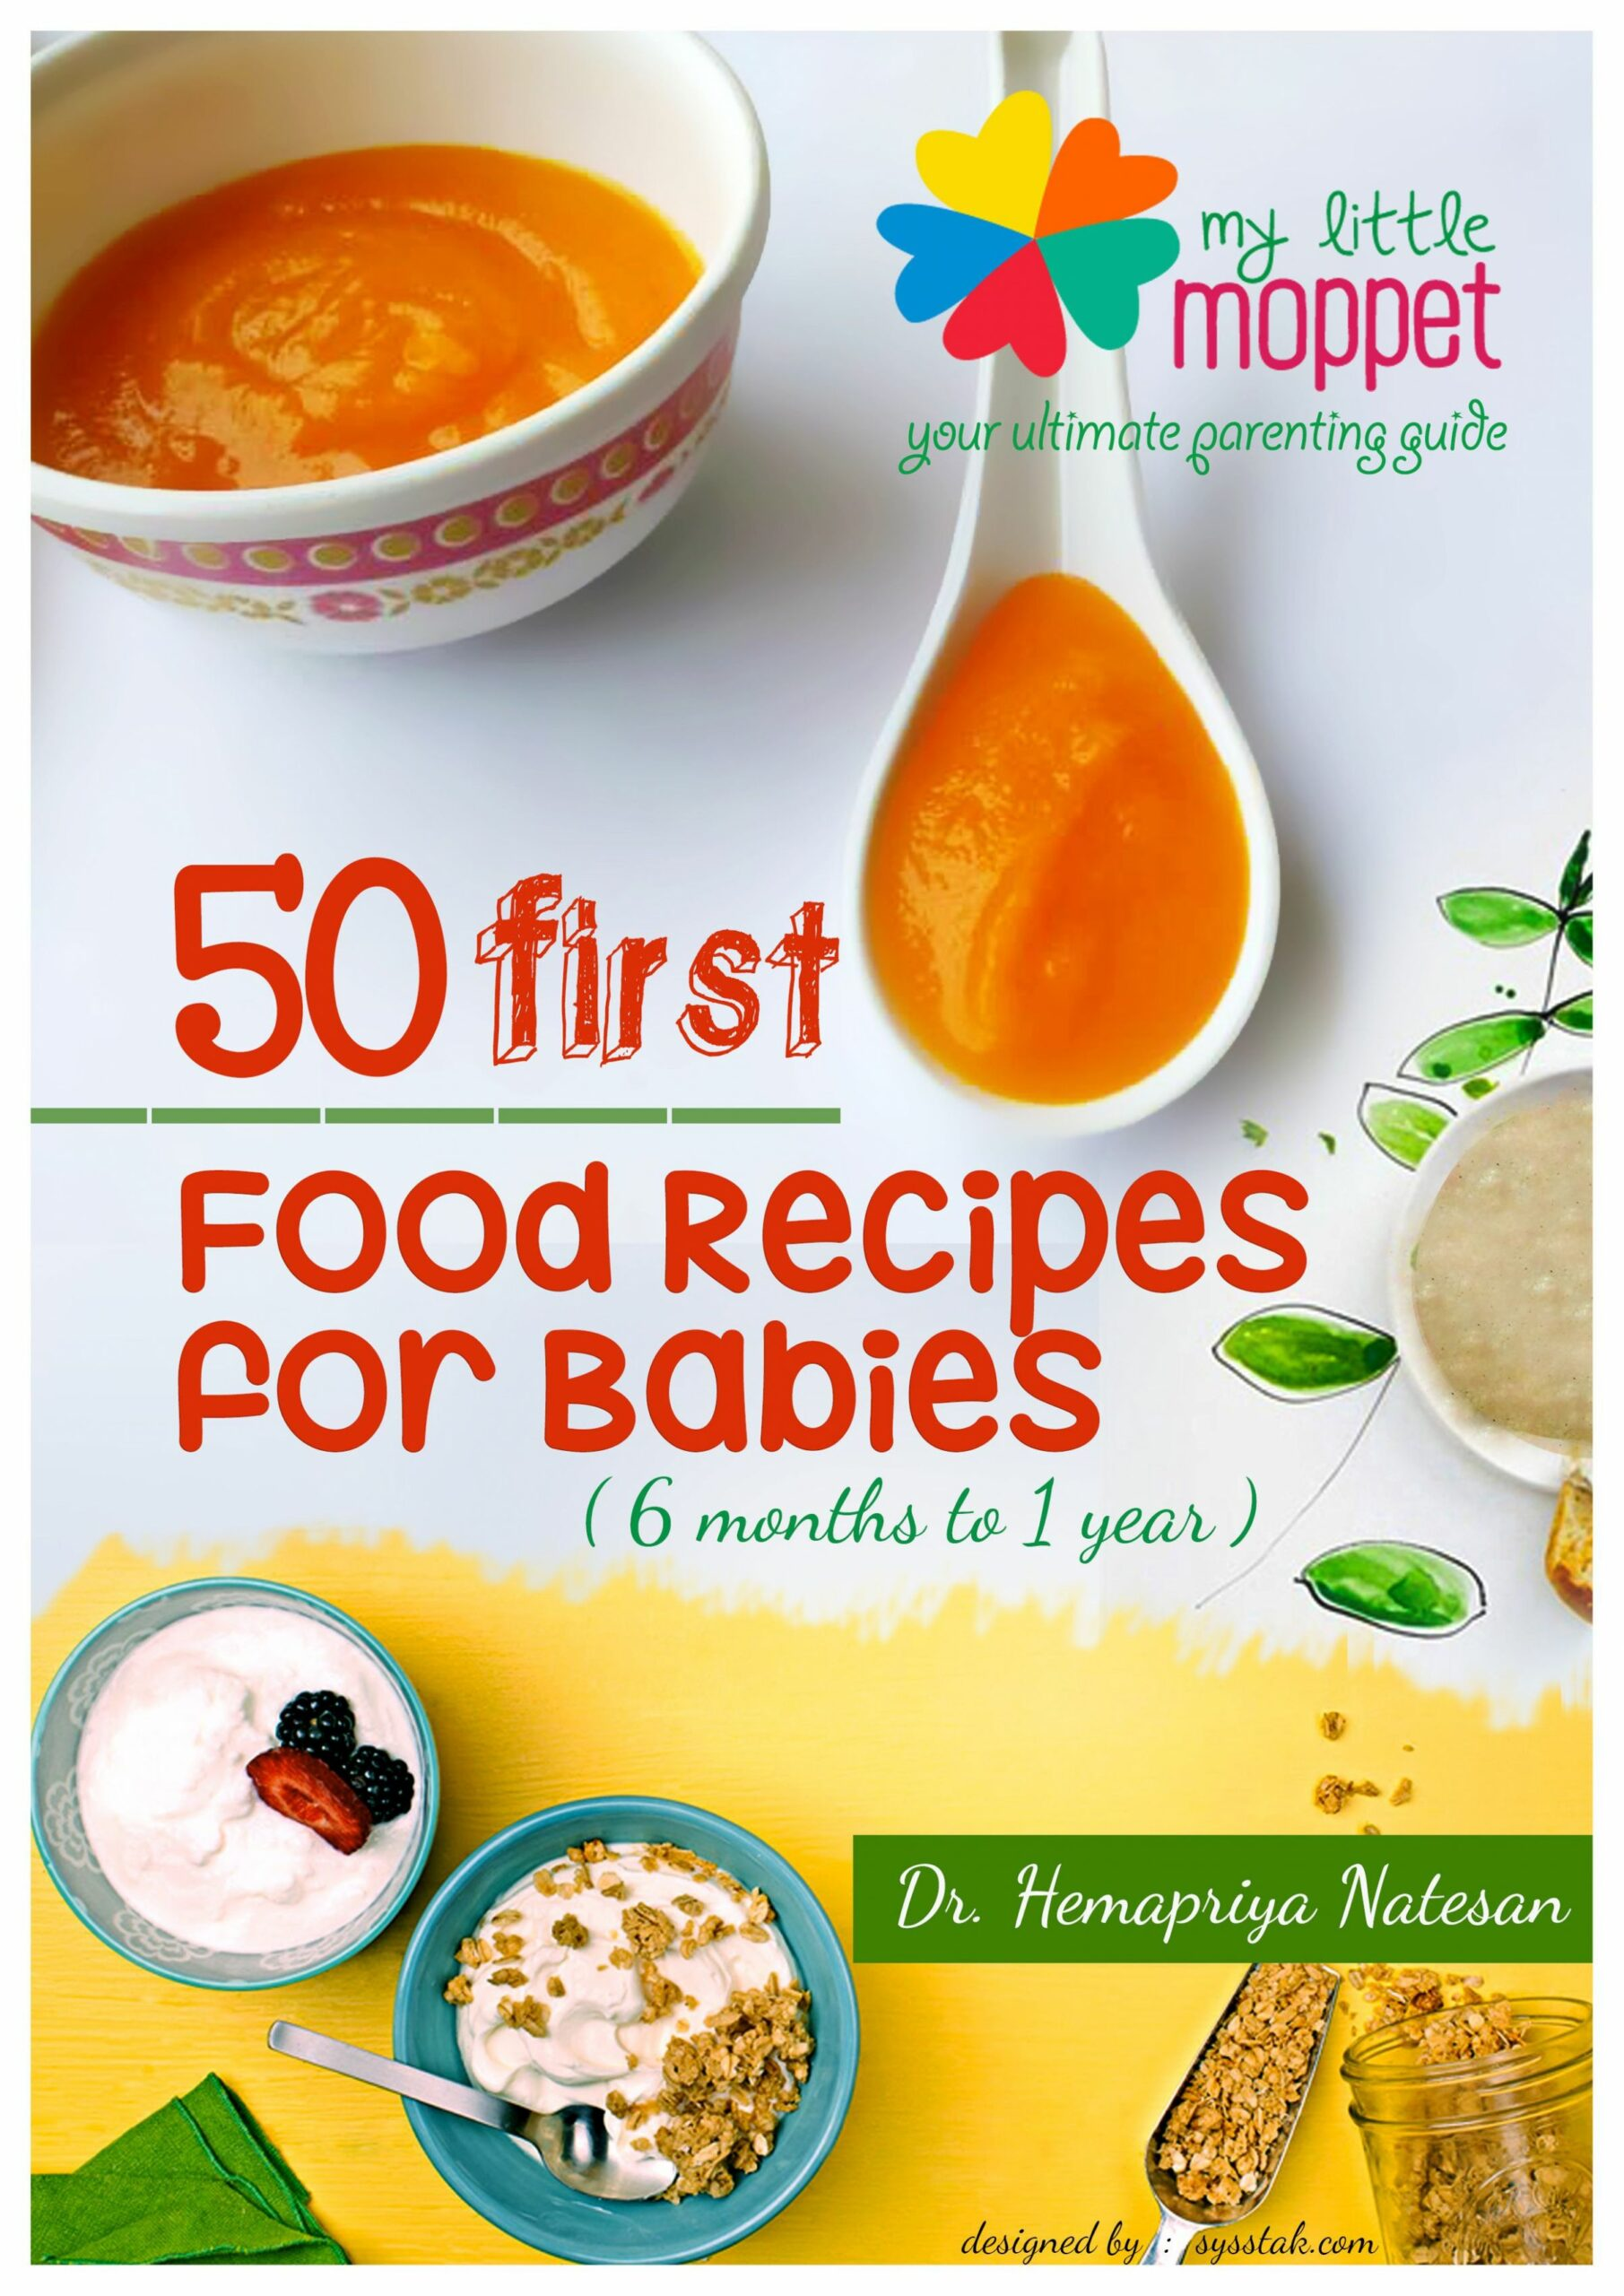 Protected: Free E-Book – 10 First Food Recipes for Babies | Baby ..